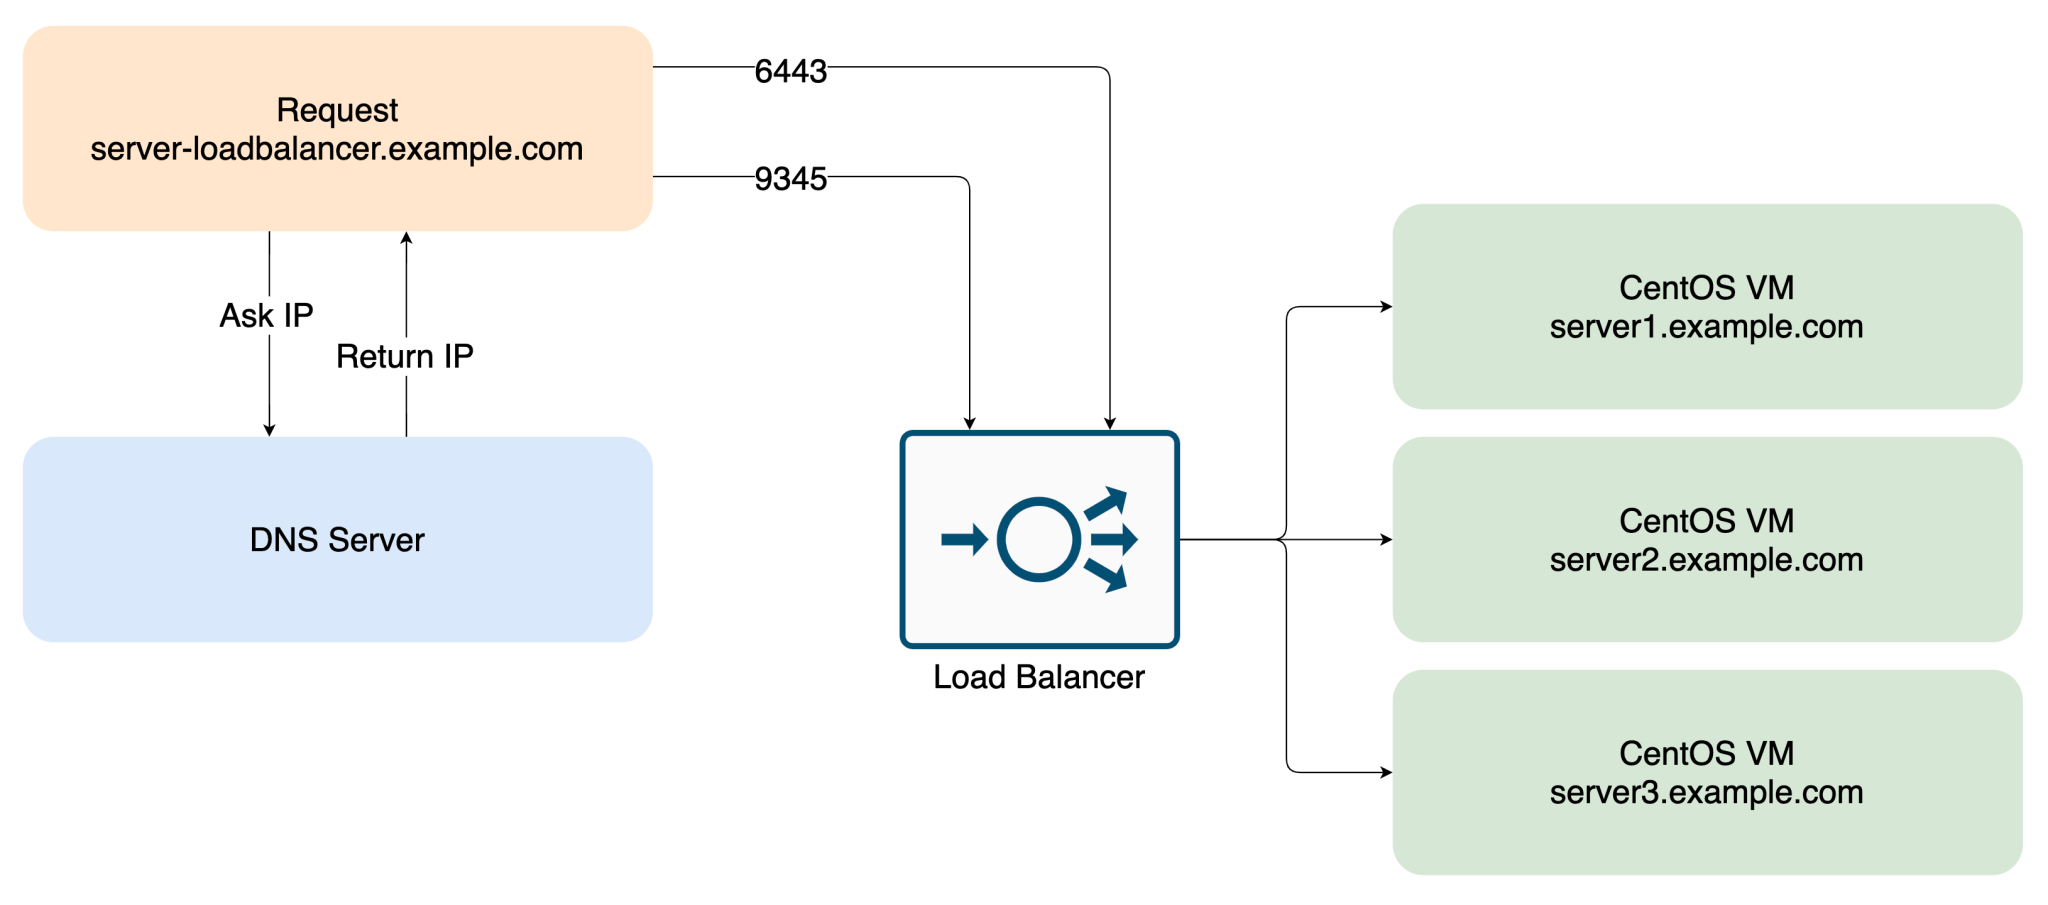 Adding nodes to the load balancer in front of the server nodes